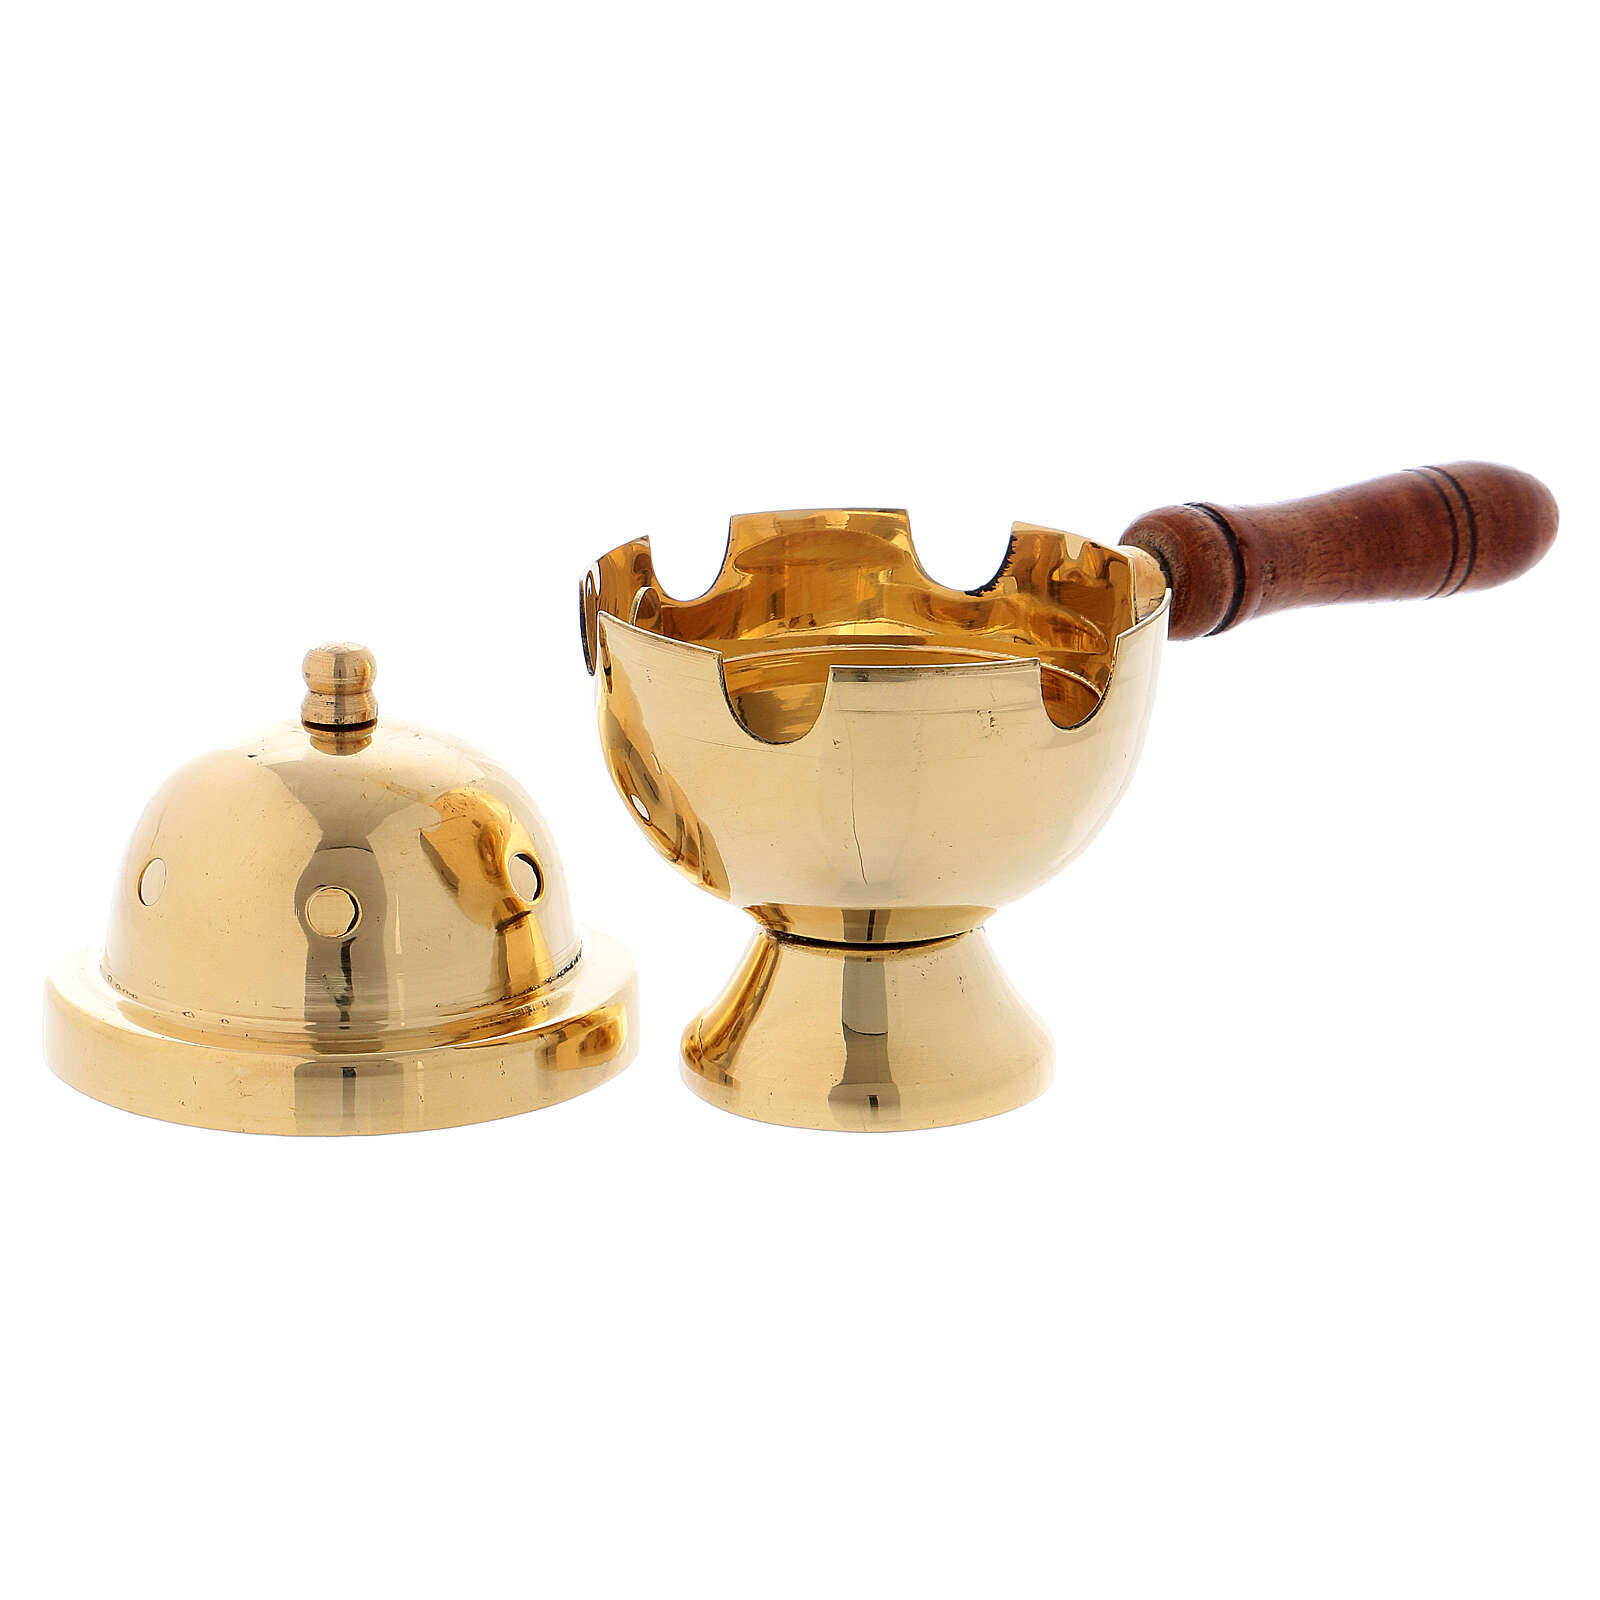 Gold plated brass incense burner with wood handle h 4 1/4 in 3